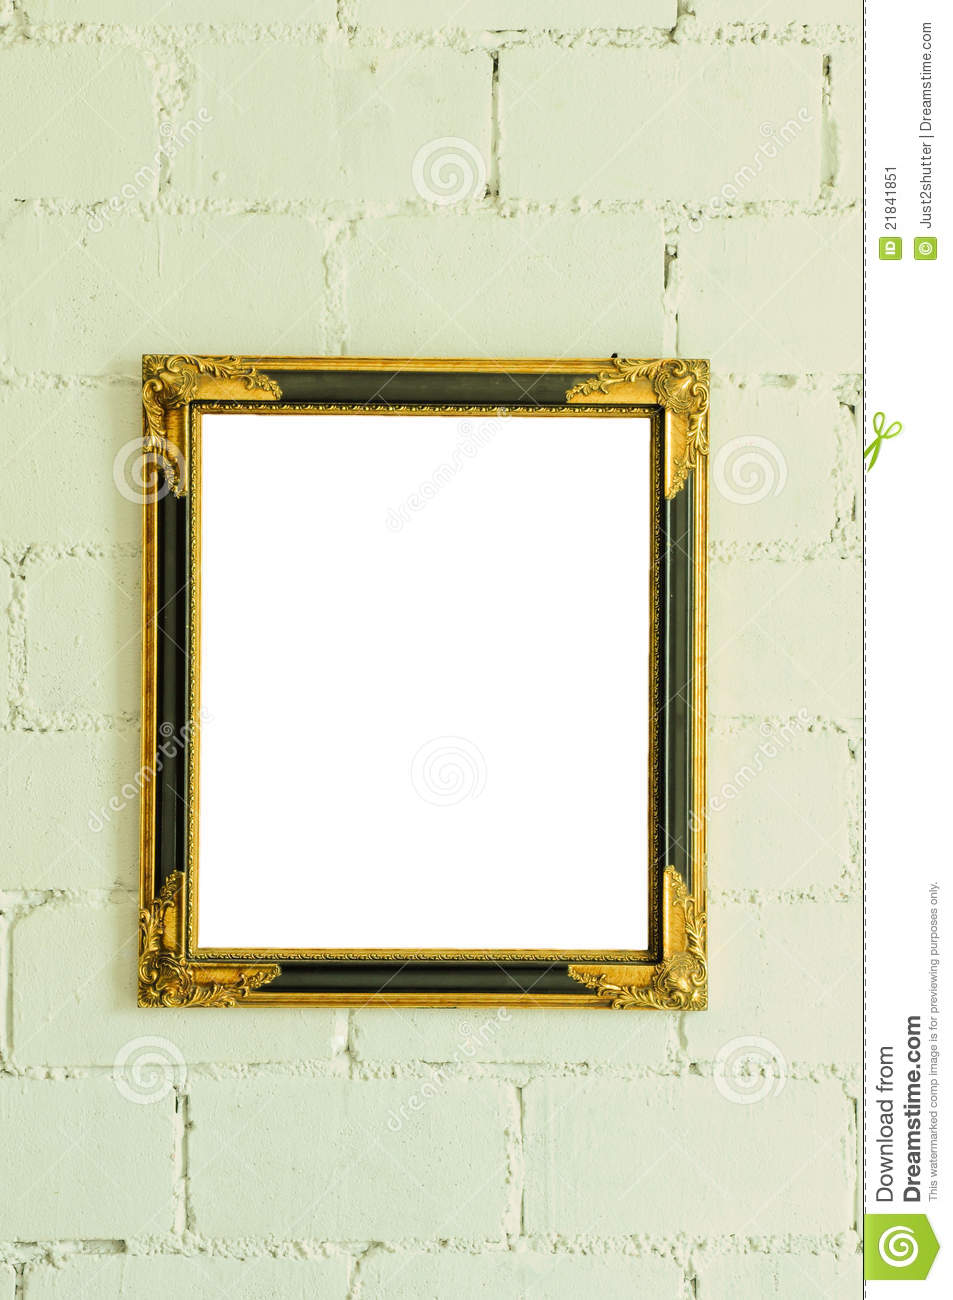 Vintage gold picture frame on white wall stock image - White wall picture frames ...